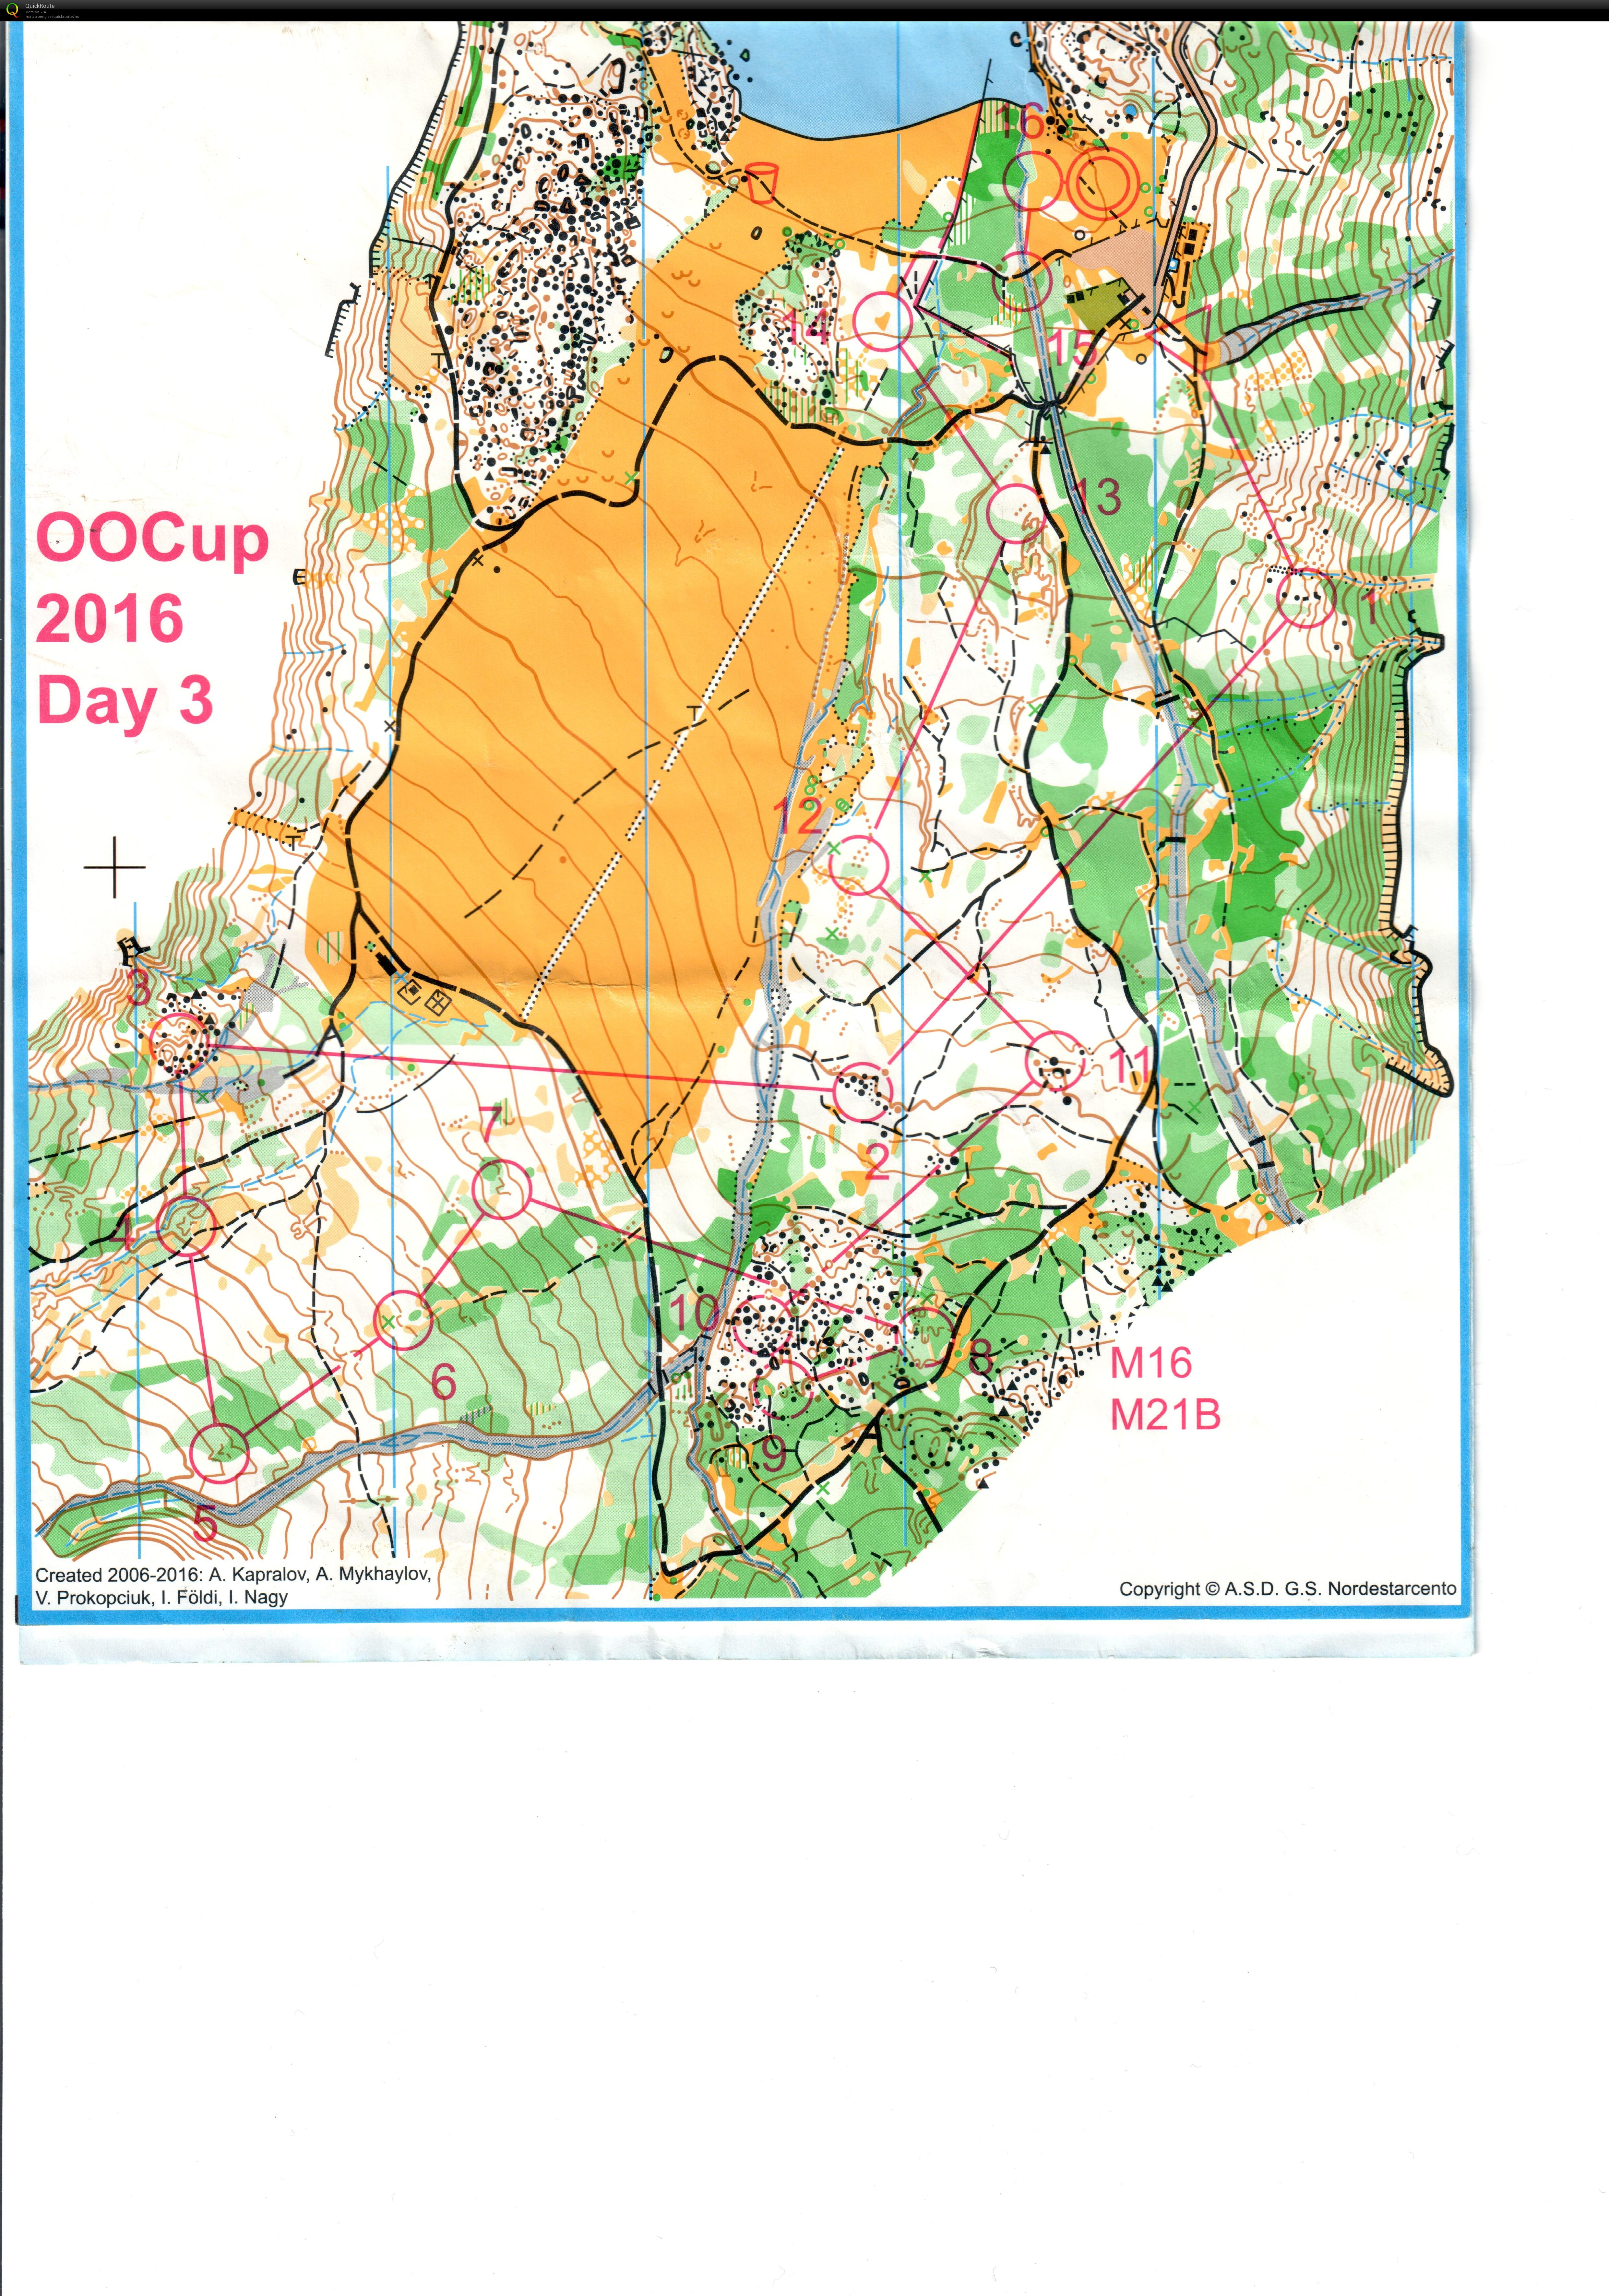 OOcup Stage3 (29.07.2016)